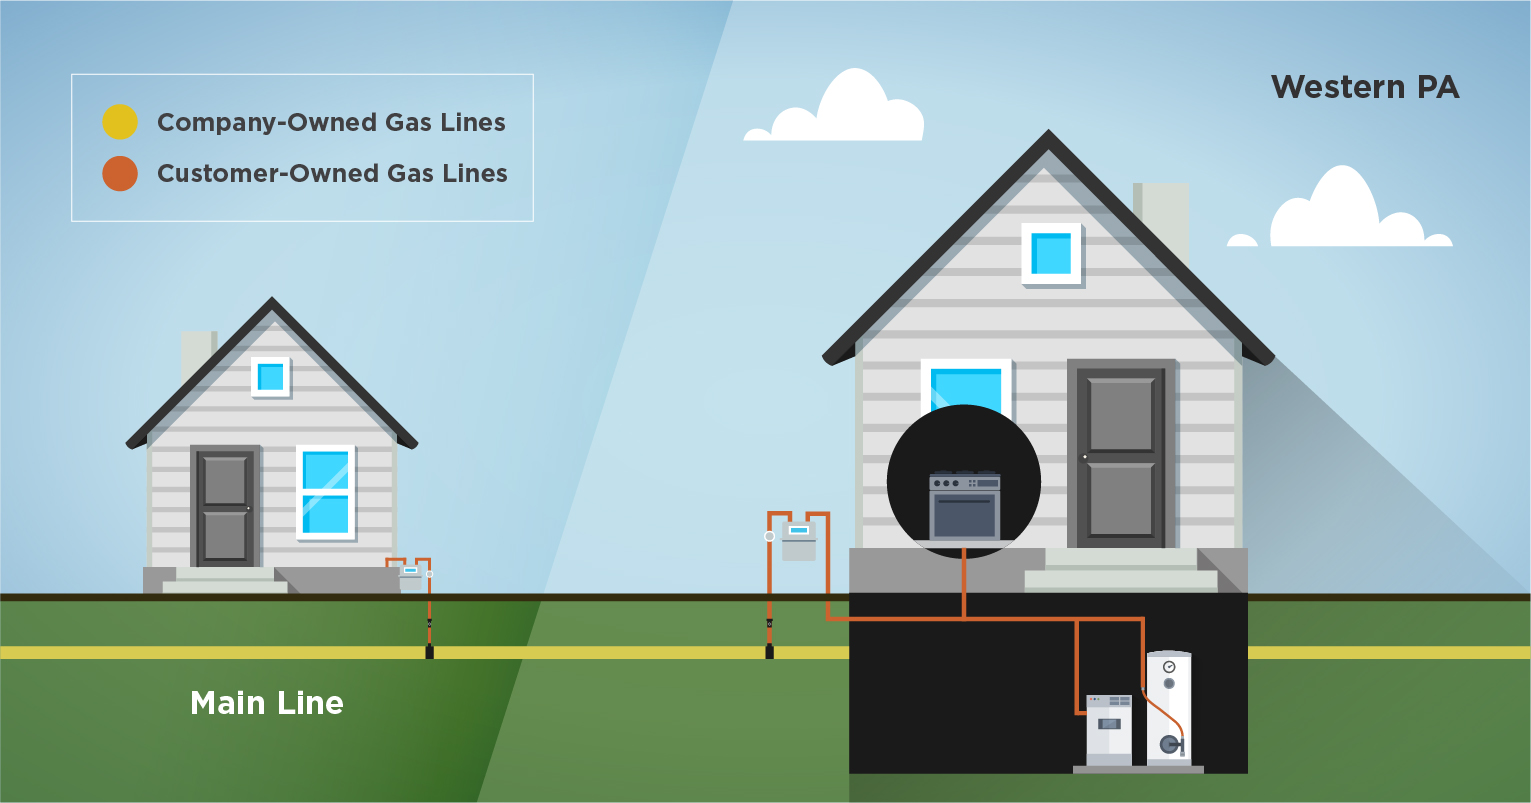 Illustration of gas line responsibilities